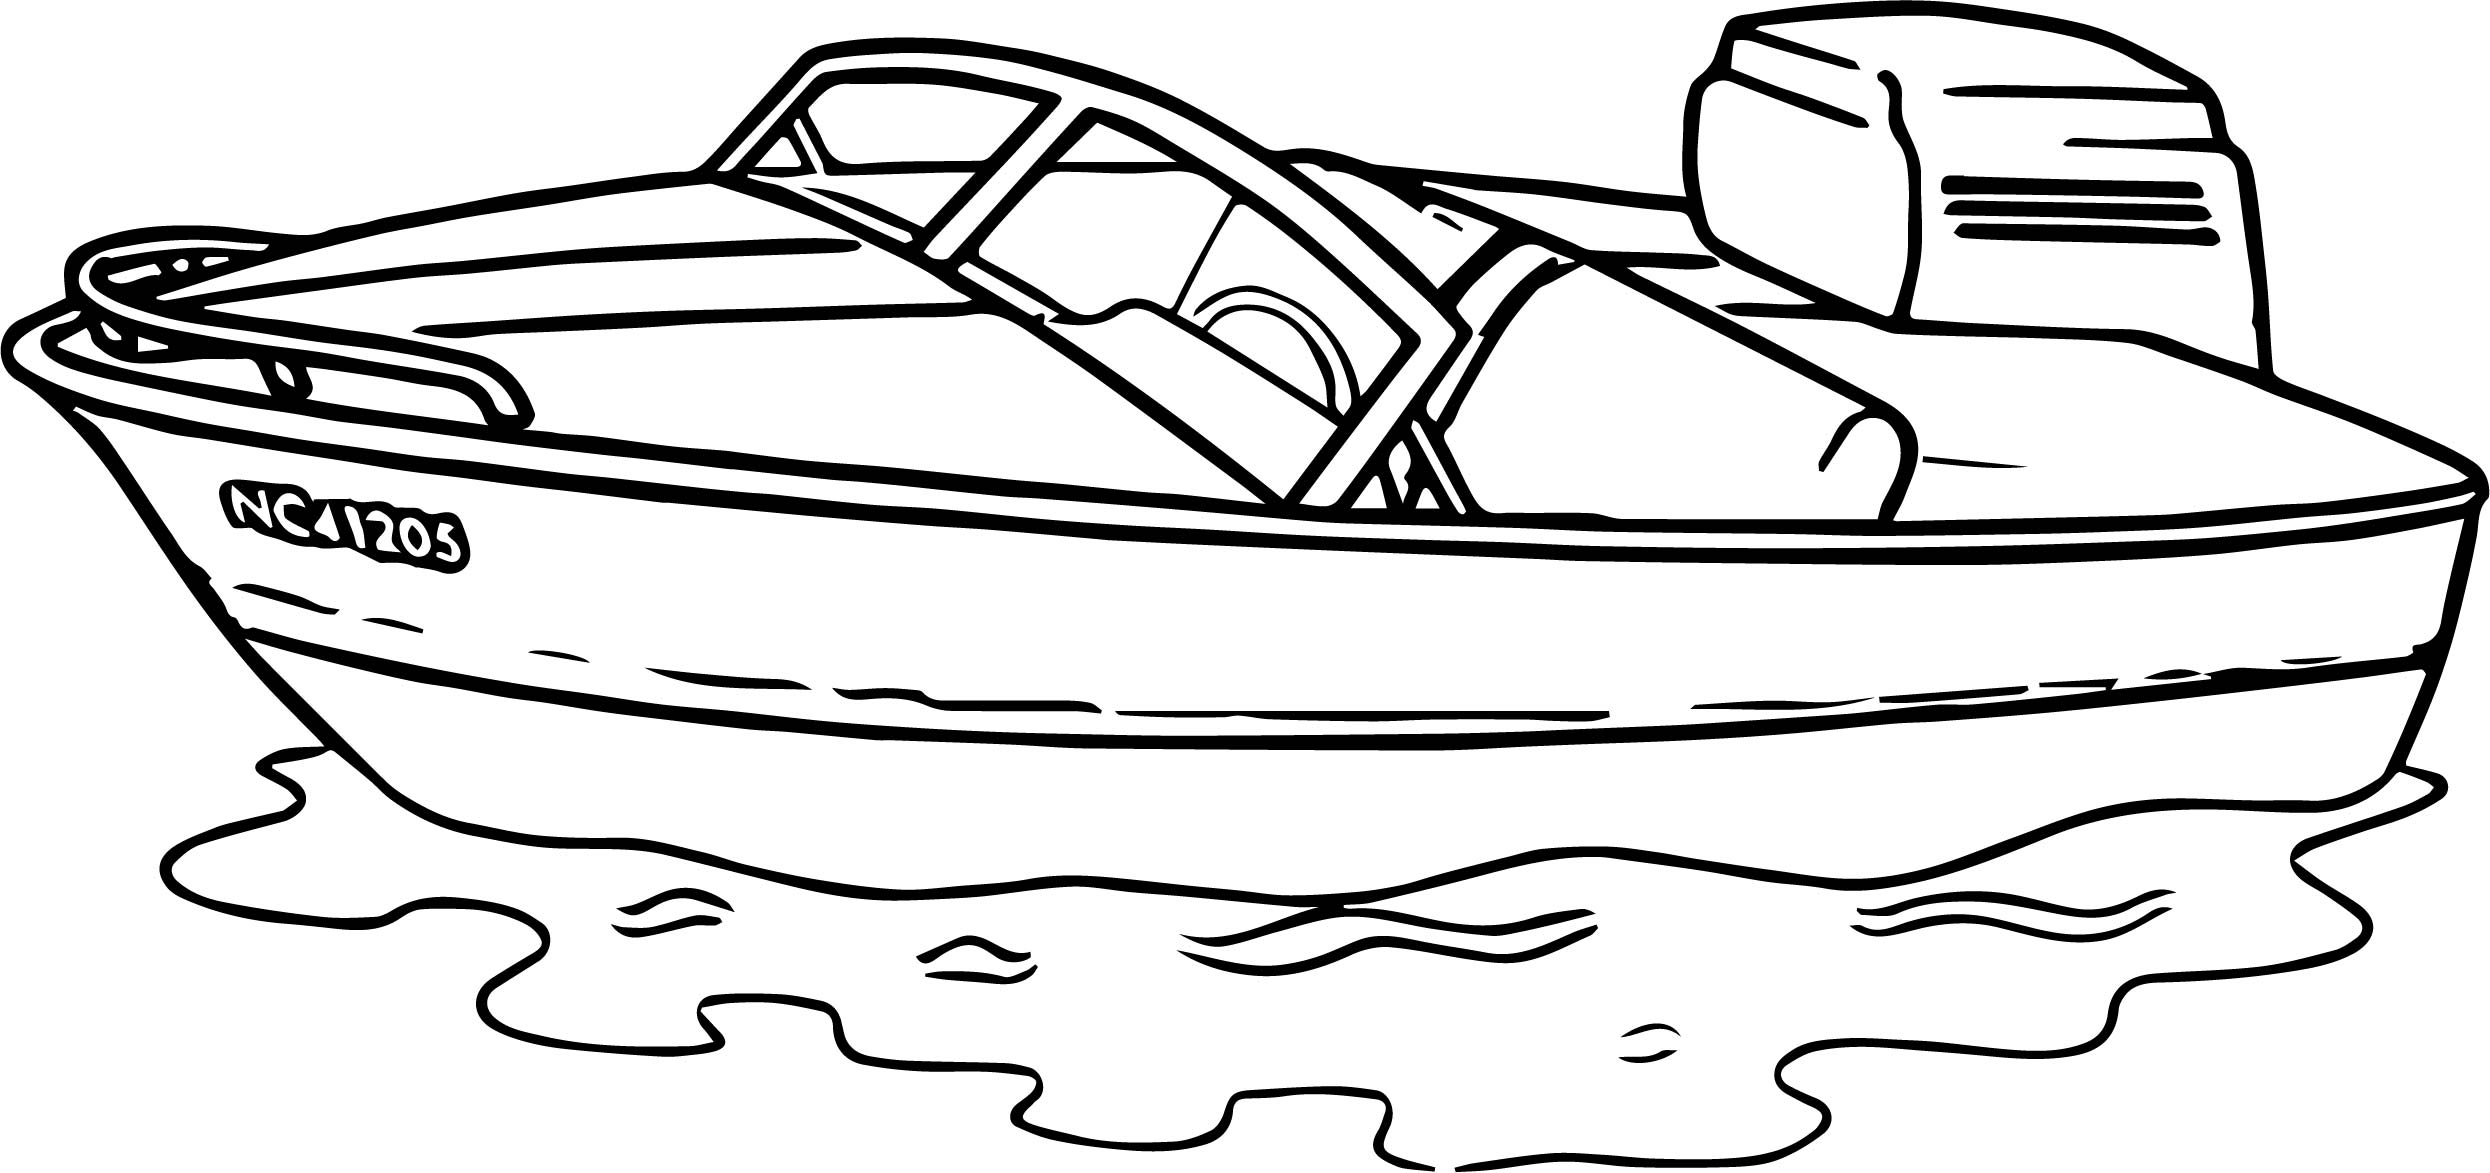 aquatic coloring pages - any motorboat aquatic coloring page